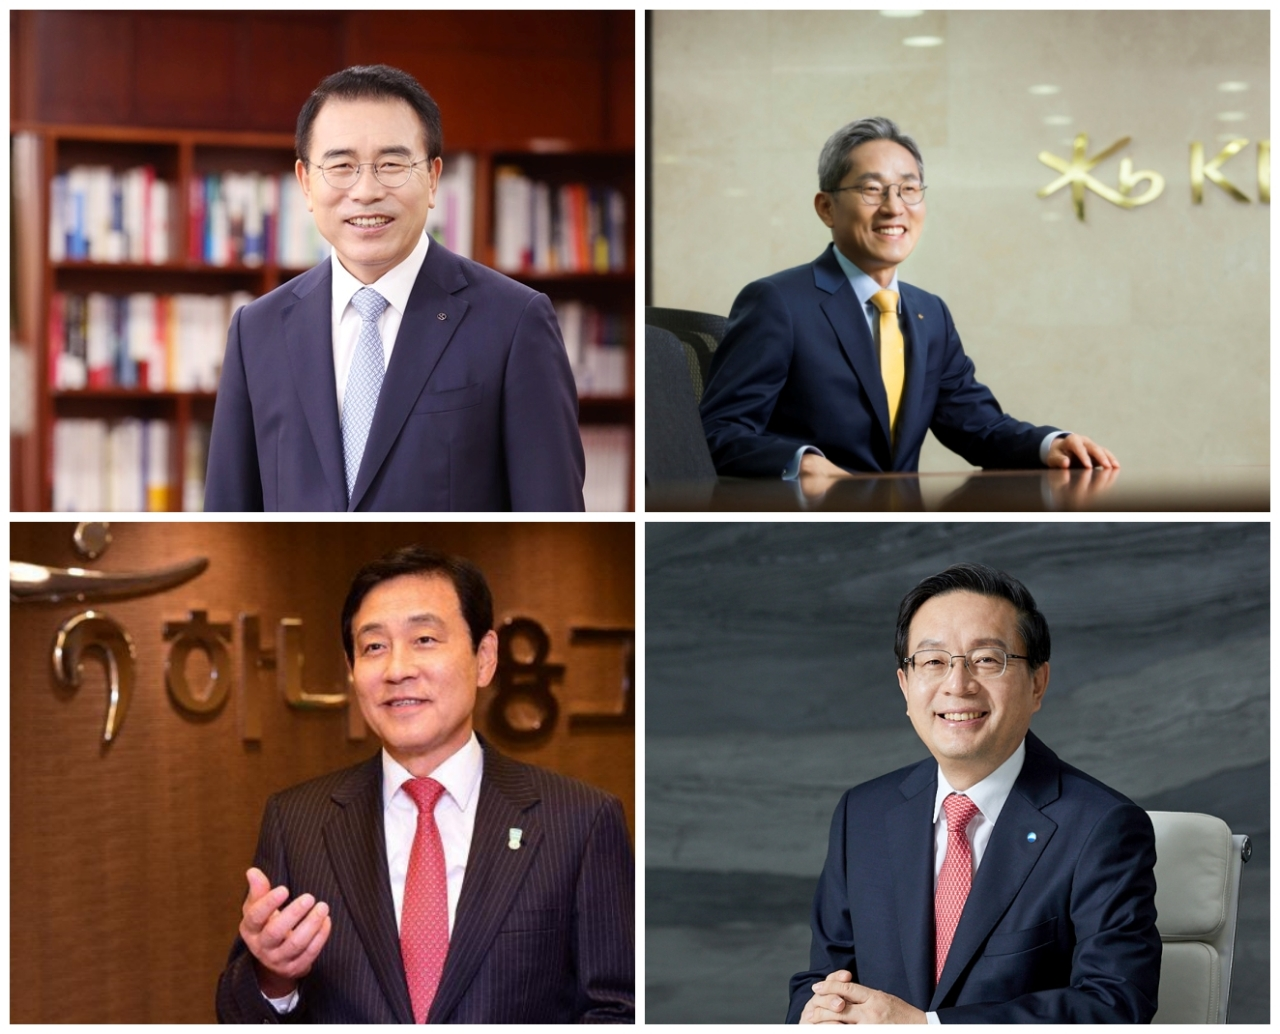 (Clockwise from top left) Shinhan Financial Group Chairman Cho Yong-byoung, KB Financial Group Chairman Yoon Jong-kyoo, Woori Bank CEO Sohn Tae-seung and Hana Financial Group Chairman Kim Jung-tai.